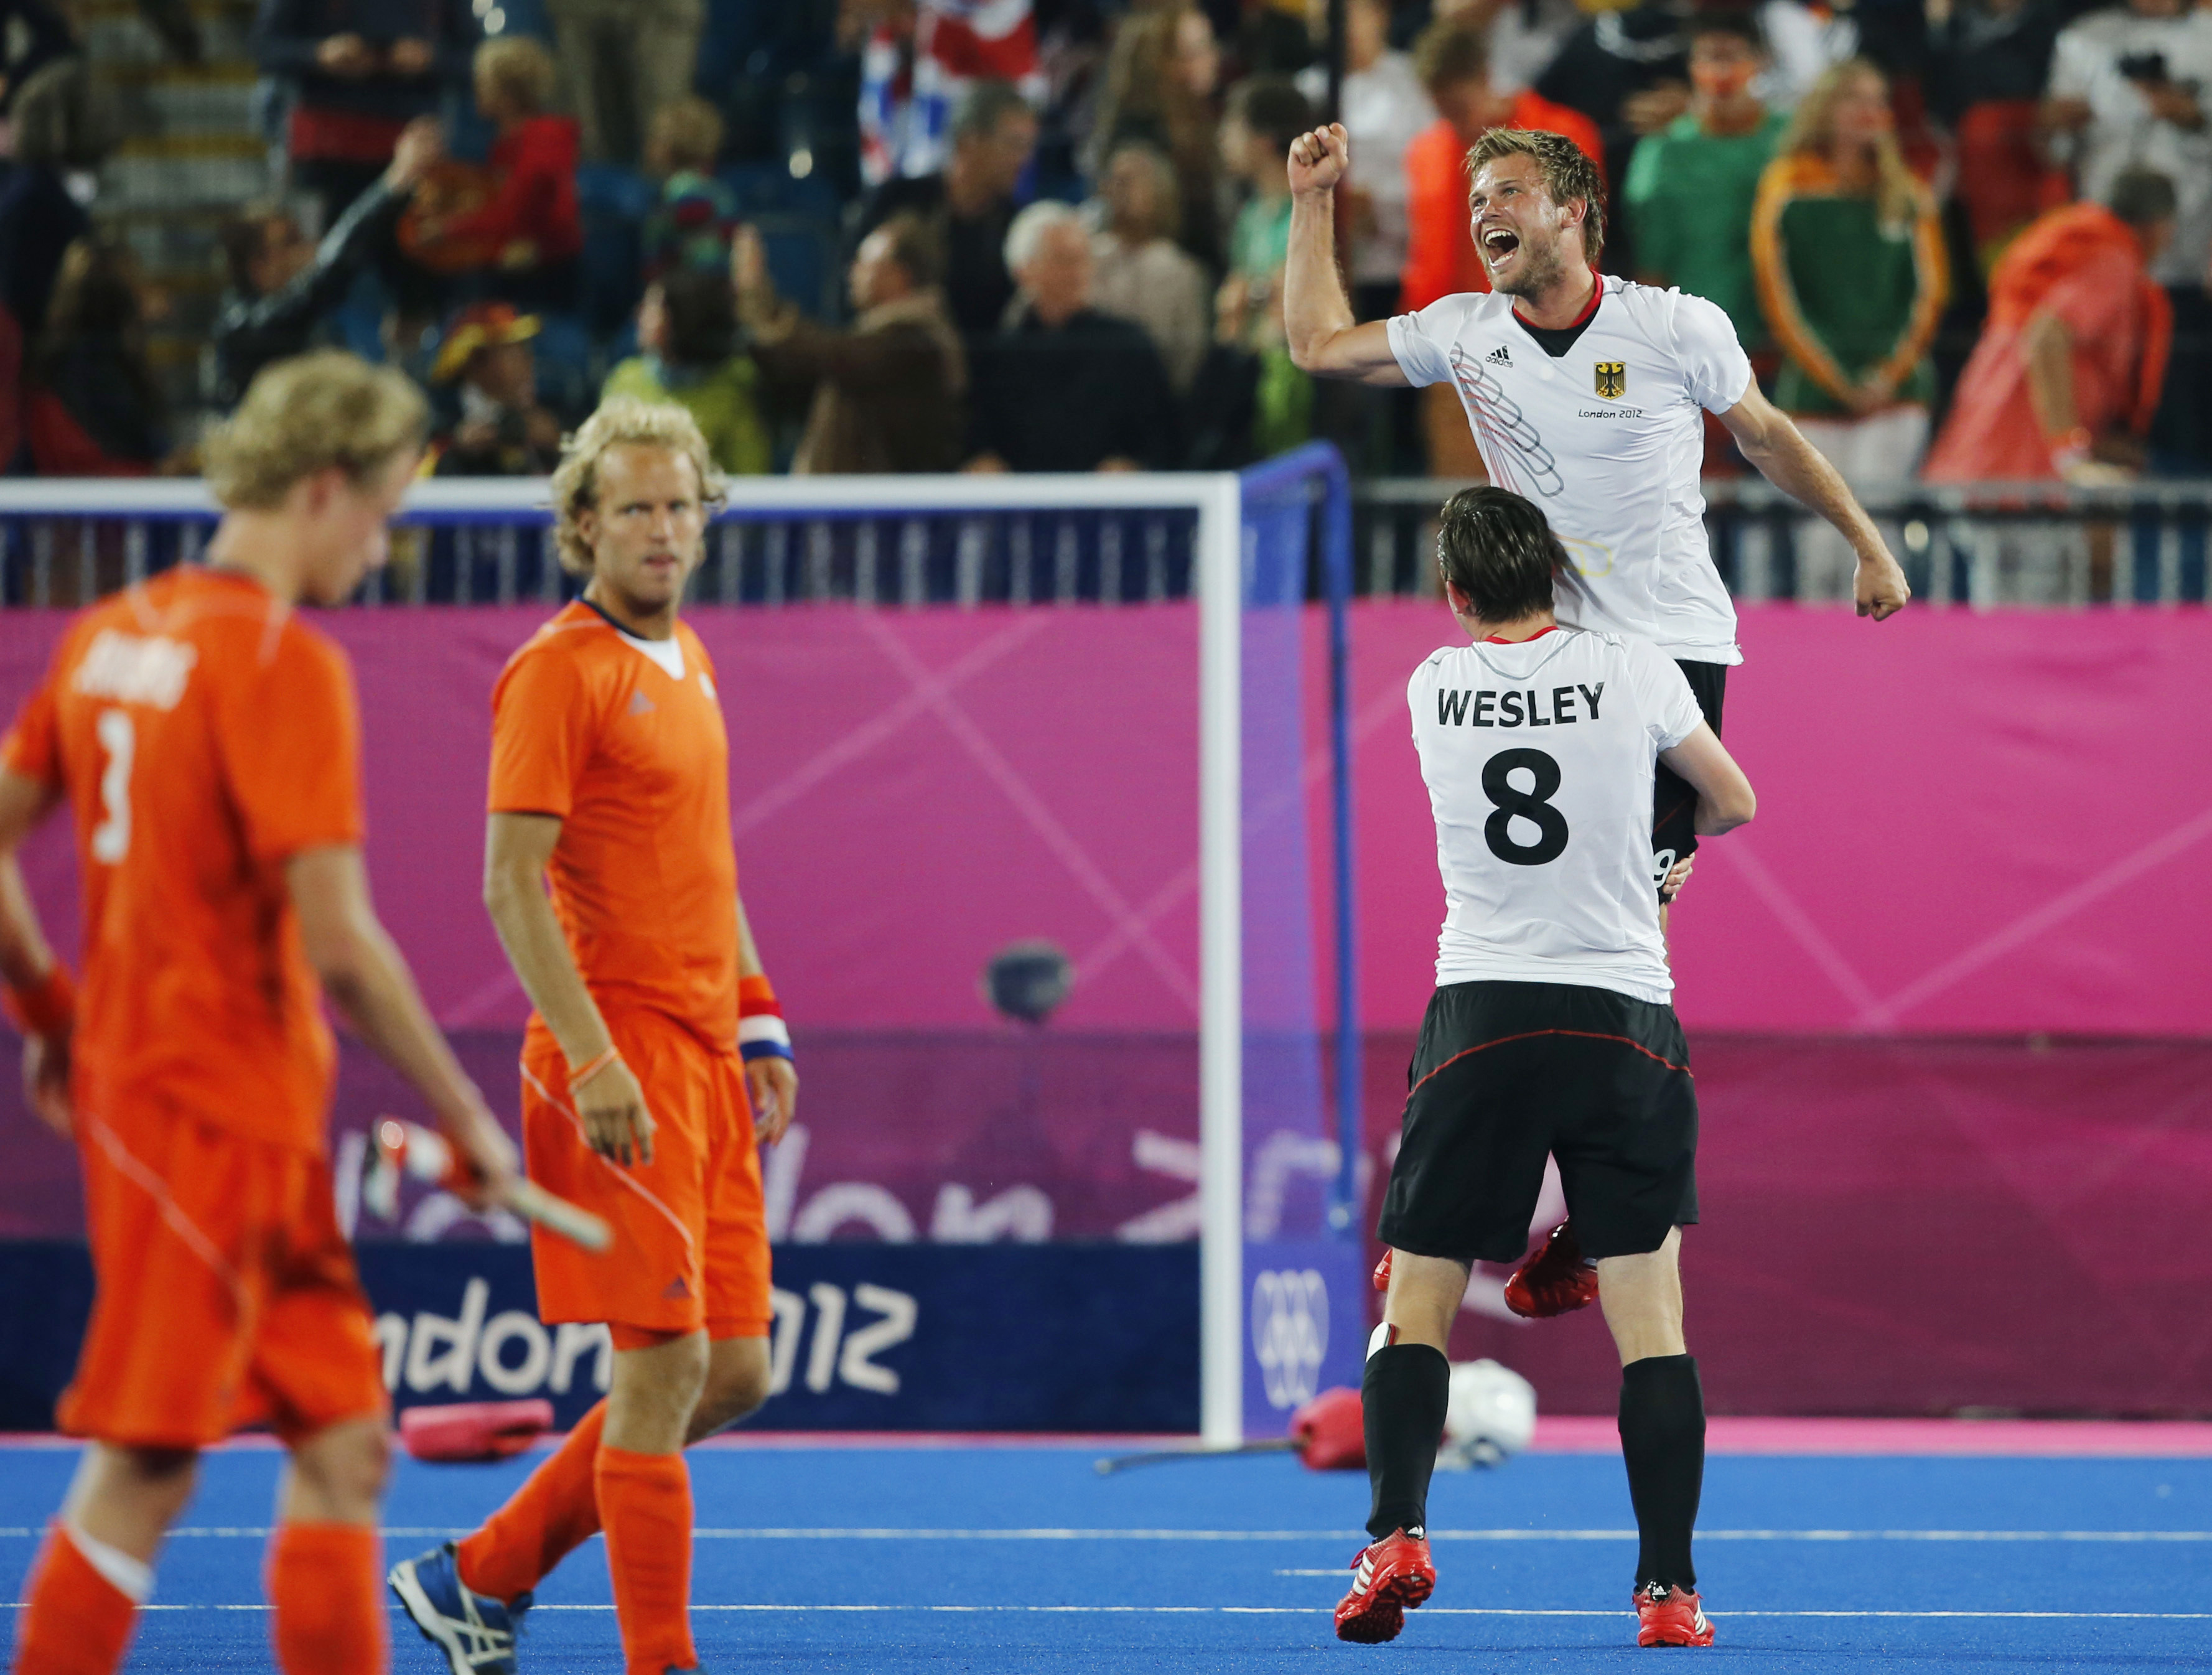 FILE - In this Aug. 11, 2012, file photo, Germany's Christopher Wesley lifts Moritz Fuerste, top right, as they celebrate their victory over the Netherlands in the men's field hockey gold medal match at the 2012 Summer Olympics in London. Germany is looki